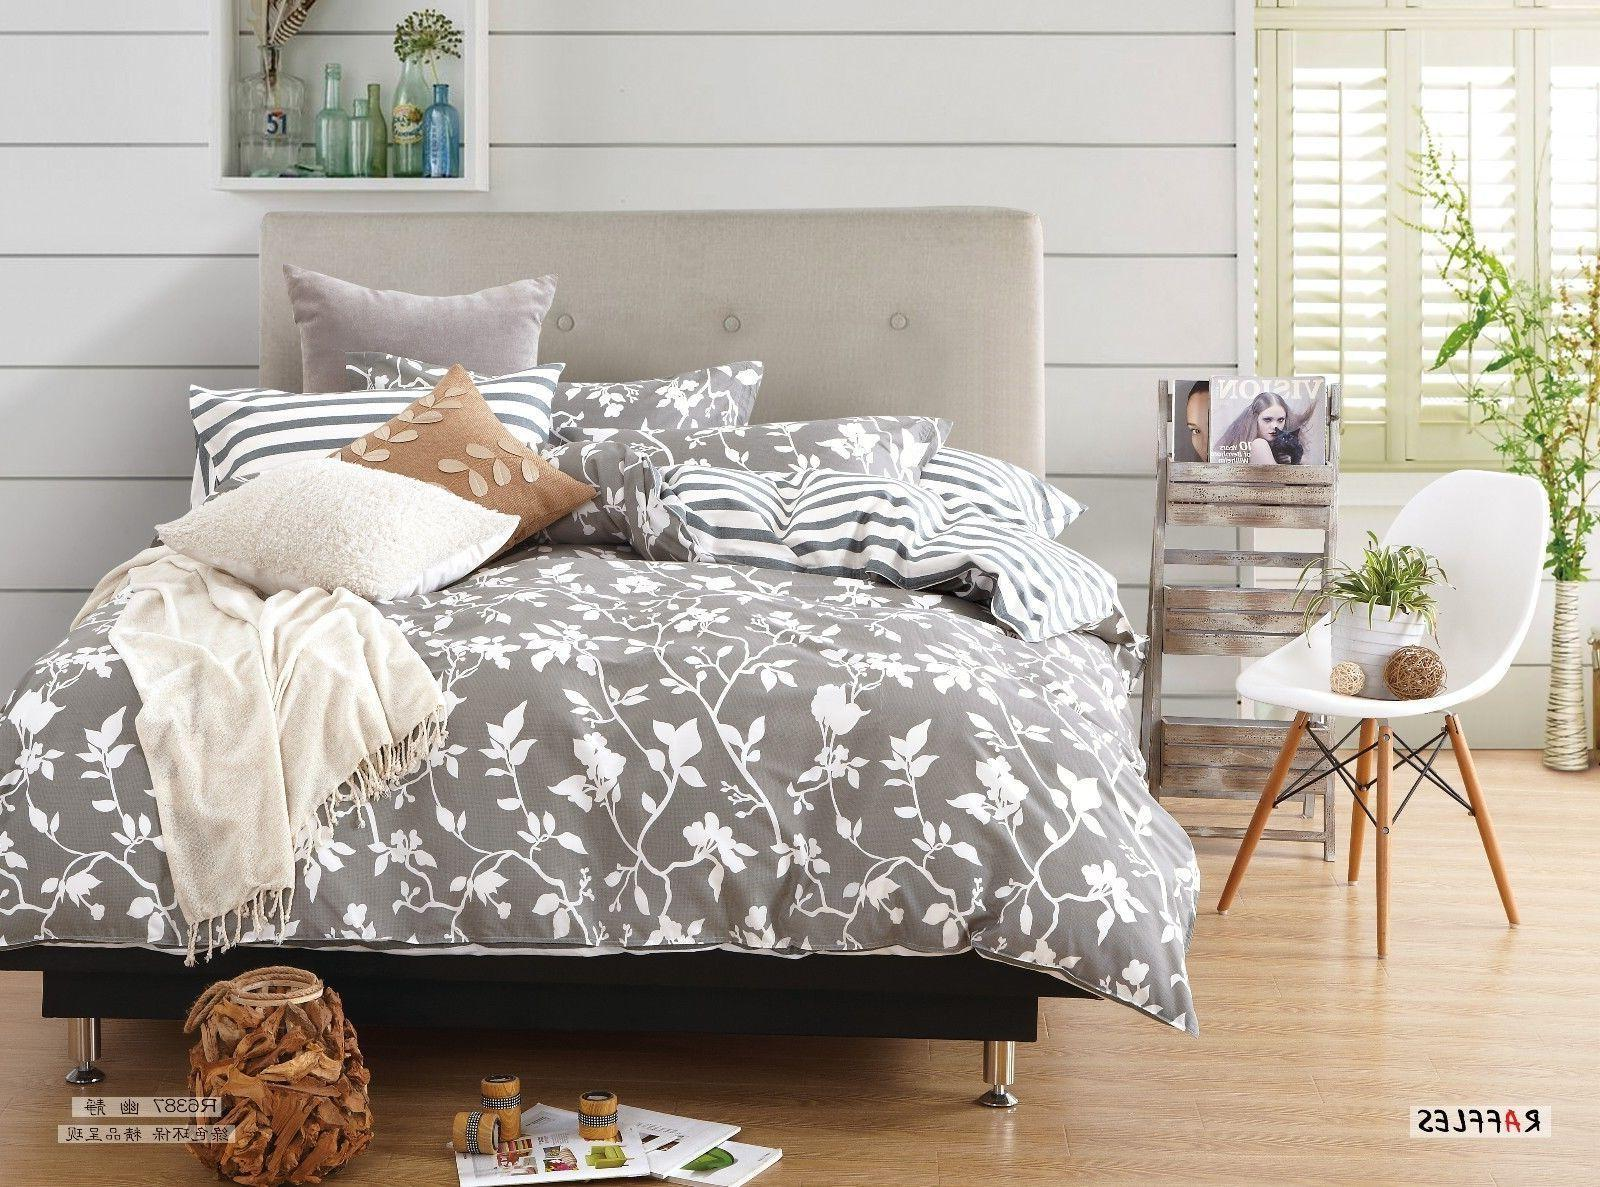 duvet 100% cotton: queen or king, 16